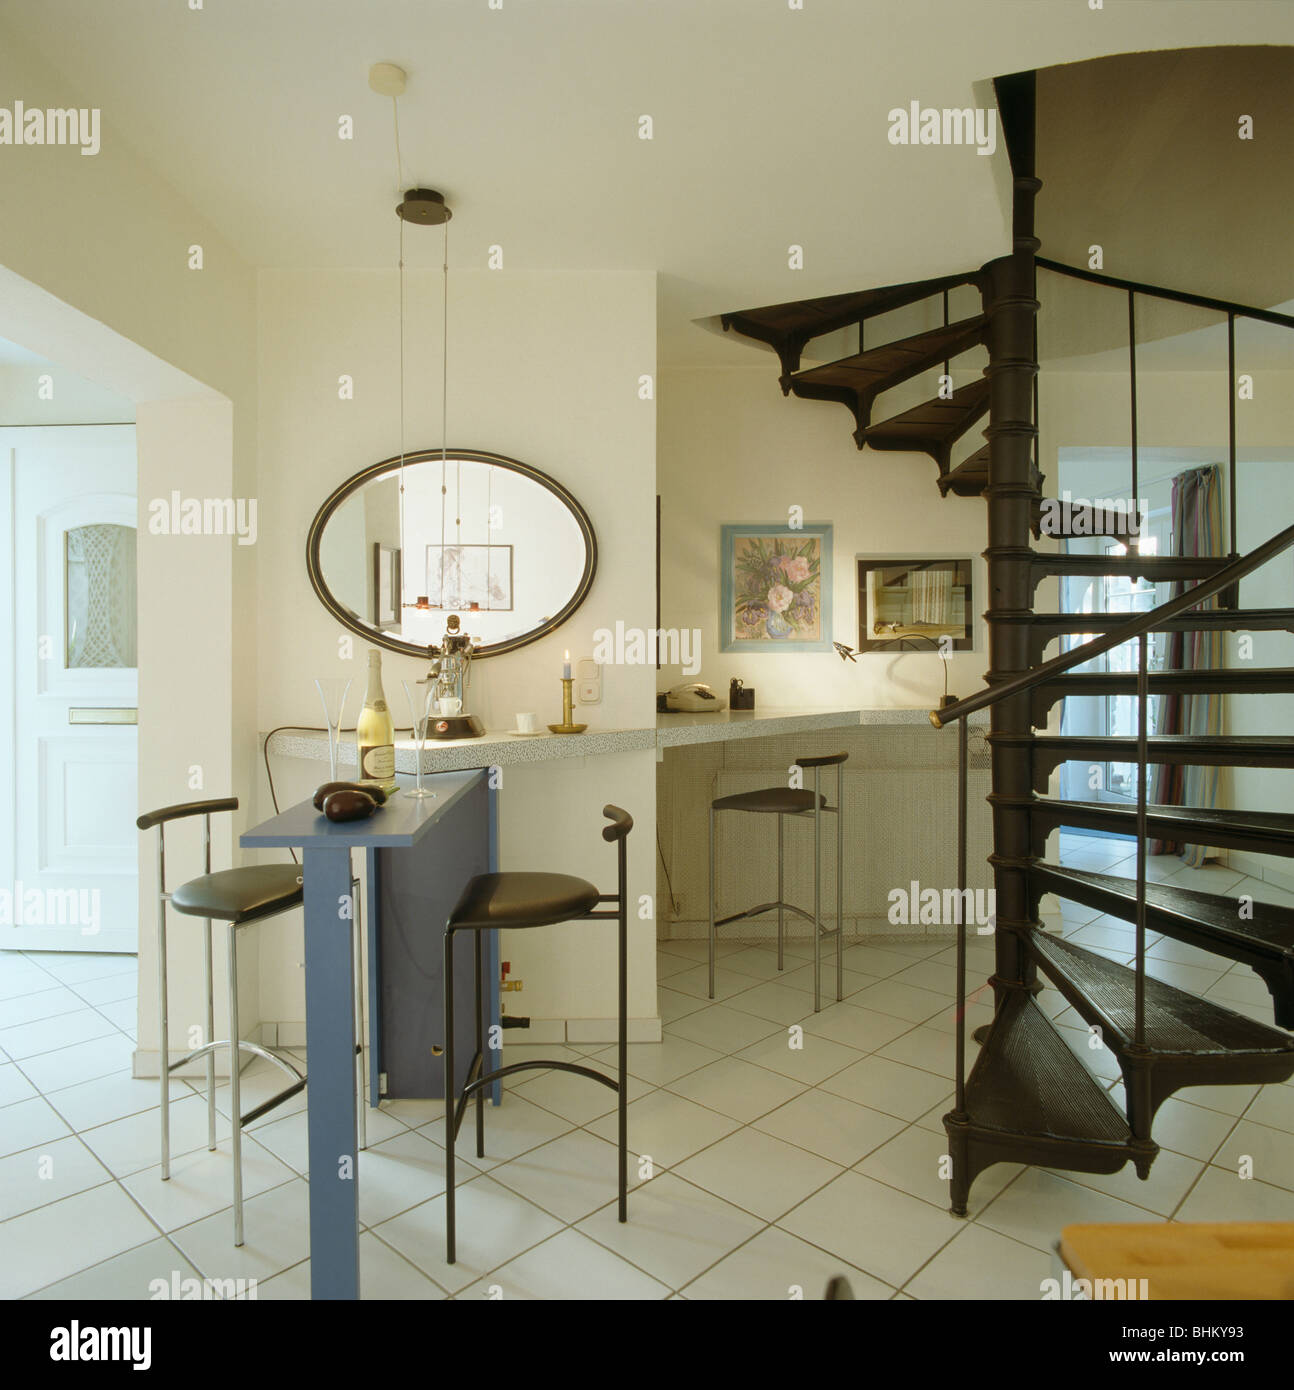 Black spiral staircase and white tiled floor in modern open ... on narrow kitchen family room, narrow kitchen with island, narrow kitchen pantry,